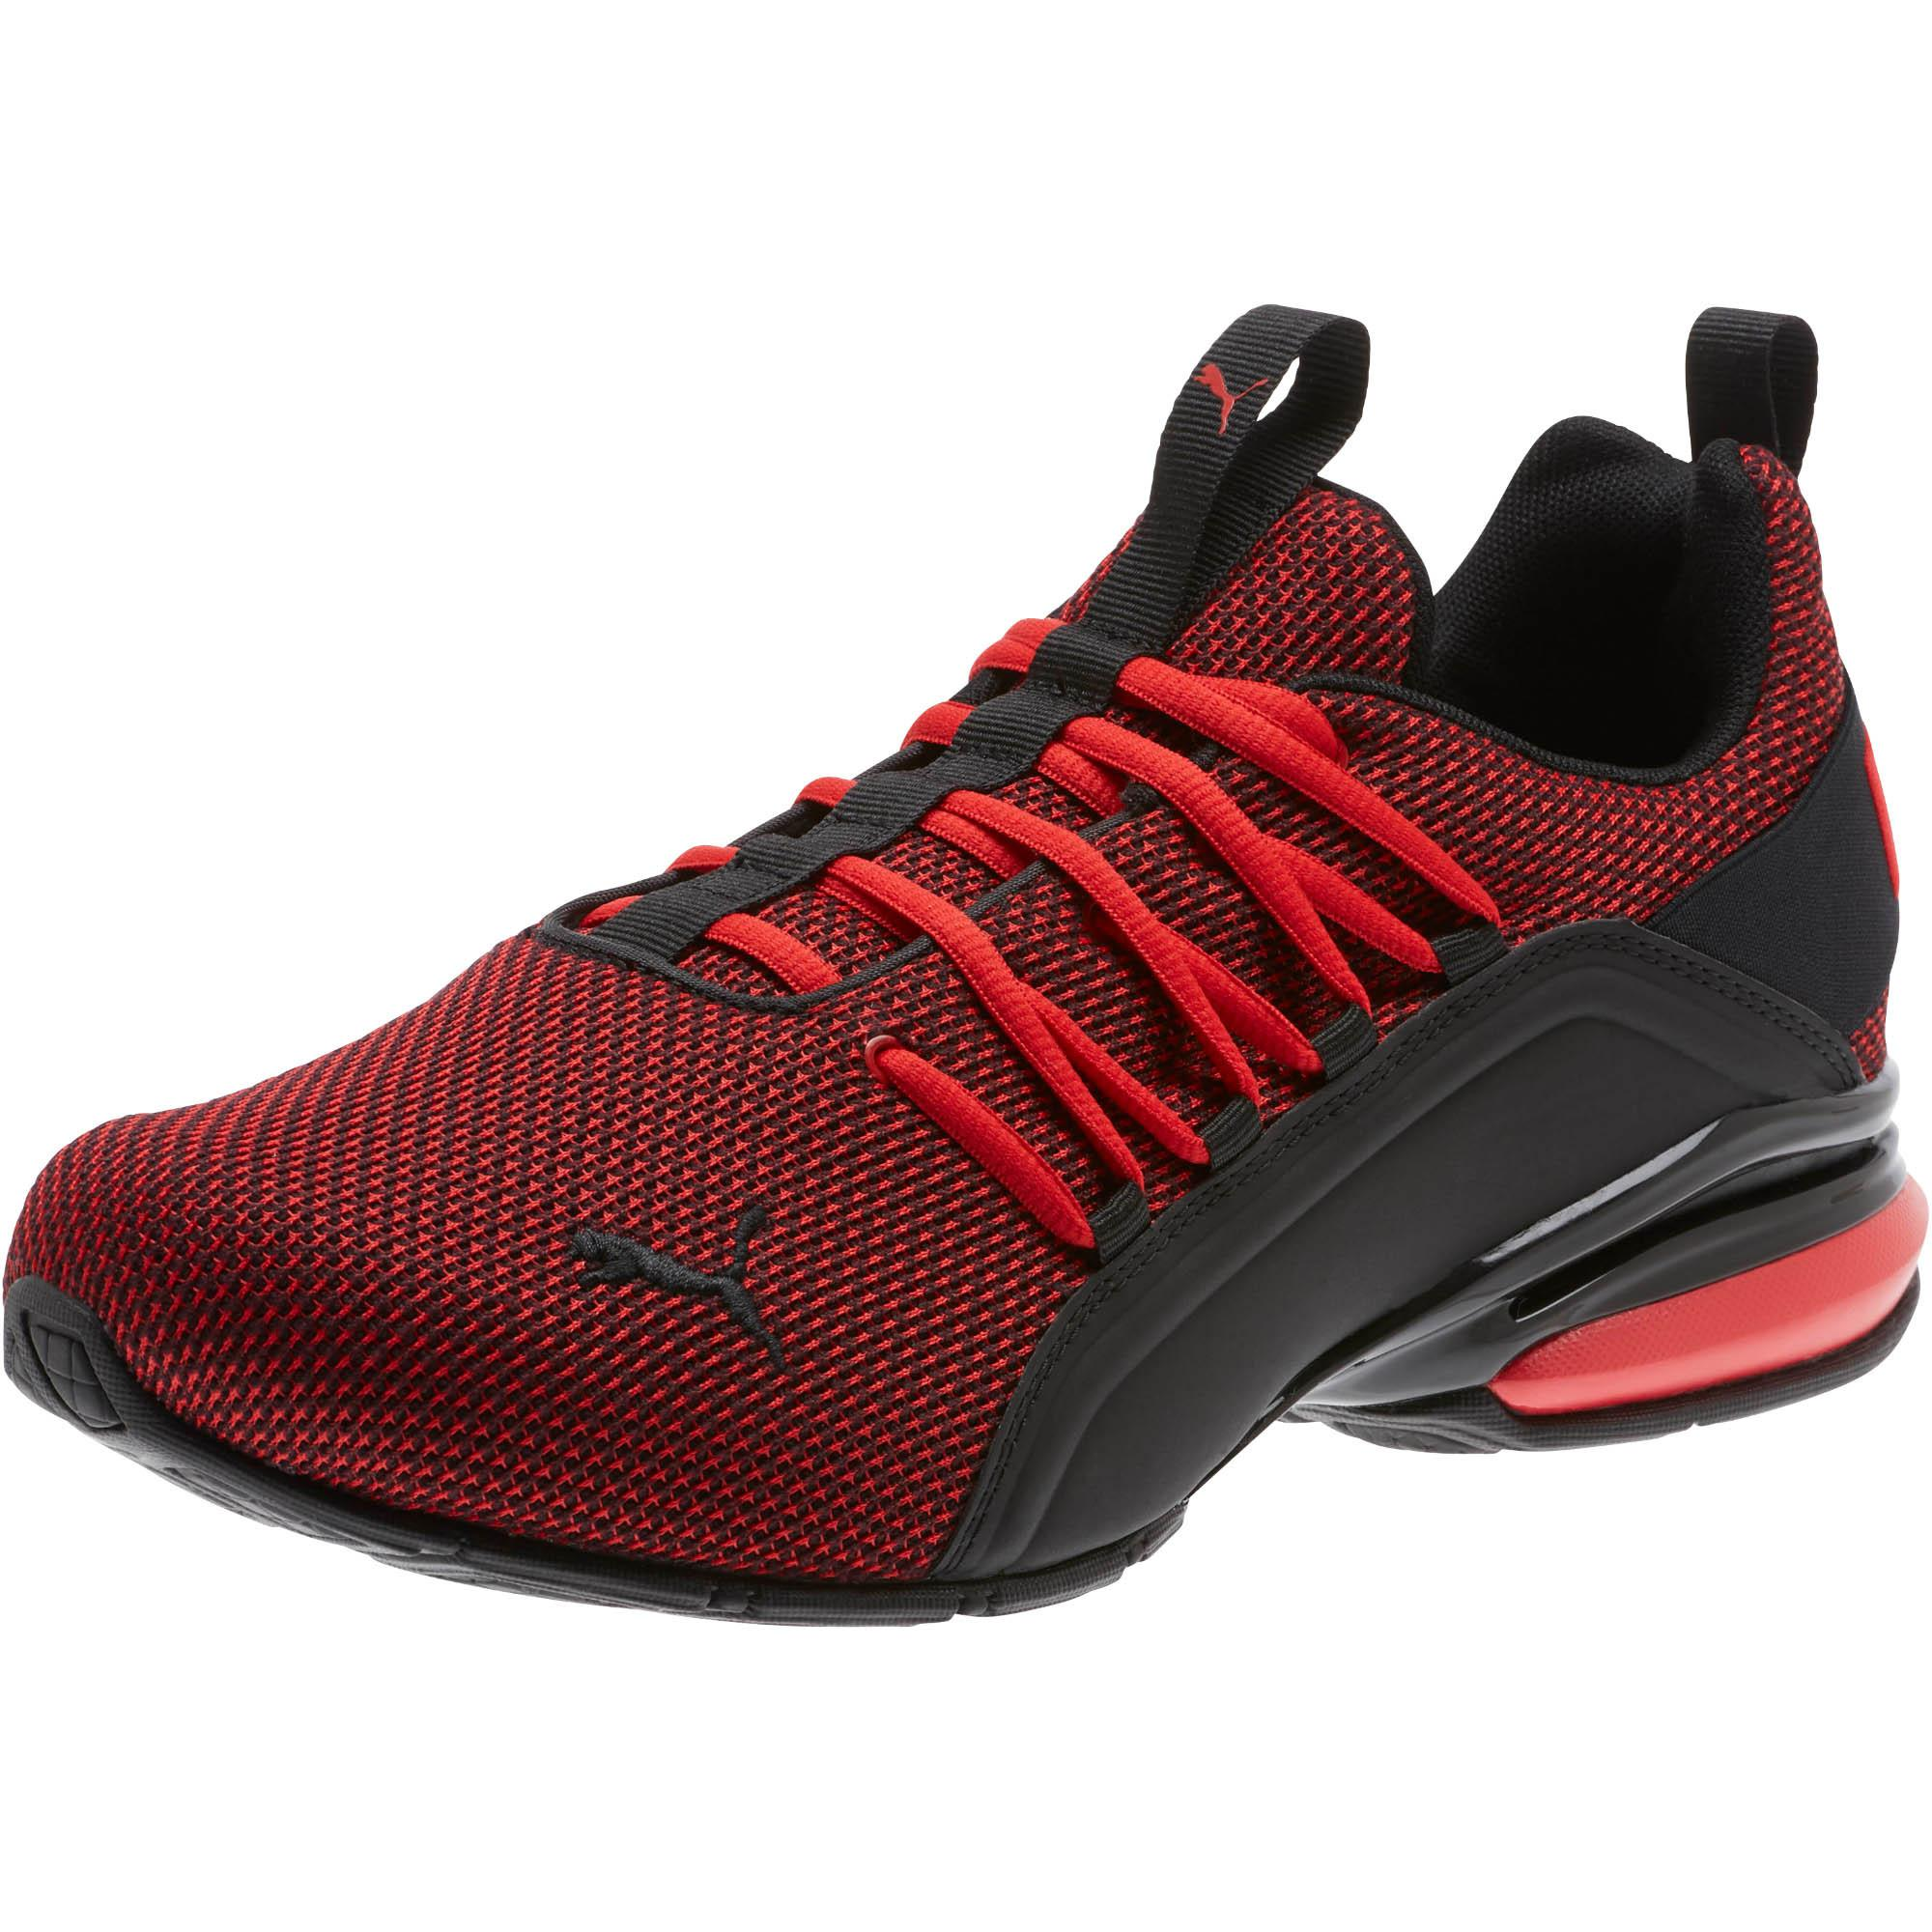 3b621540657 Lyst - PUMA Axelion Mesh Wide in Red for Men - Save 21%